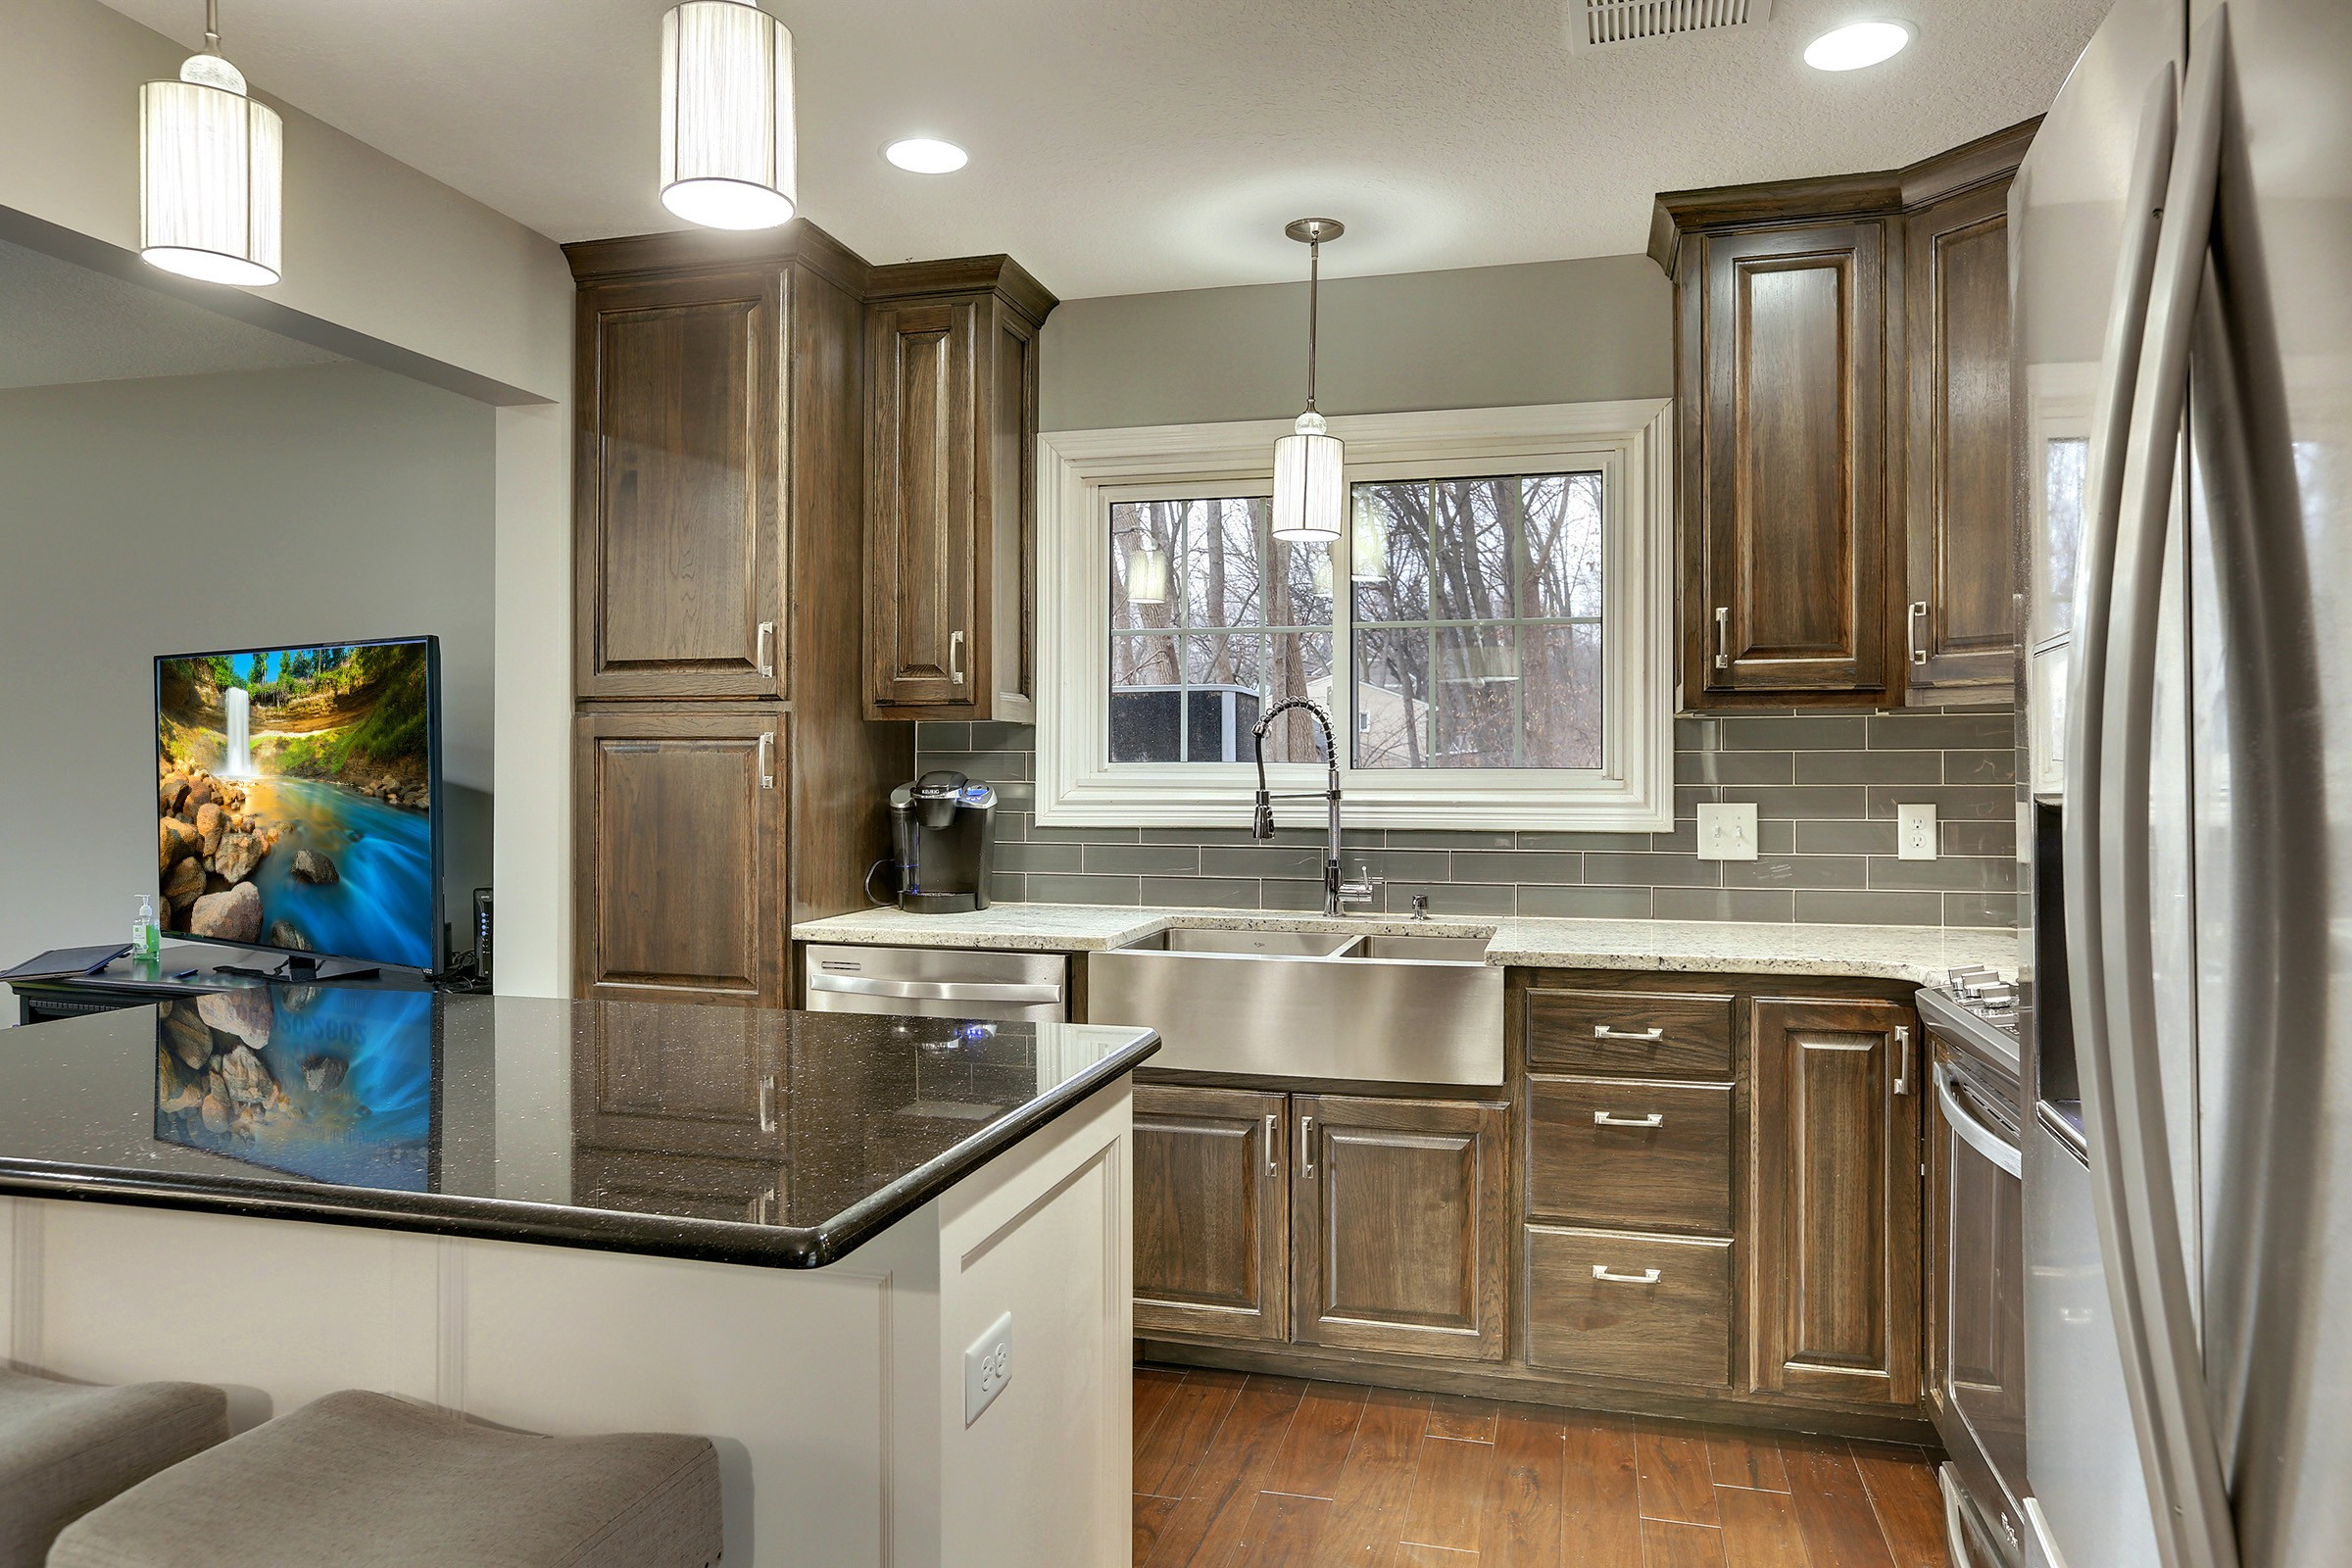 425 Magnolia - Home Building and Remodeling Experts in ...